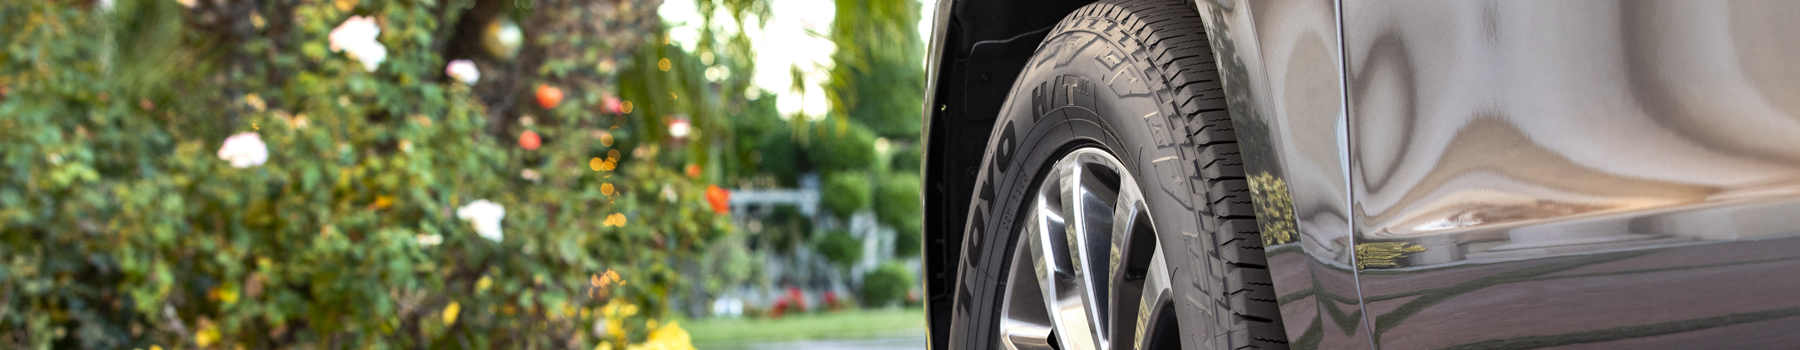 truck with Toyo's light truck highway tire